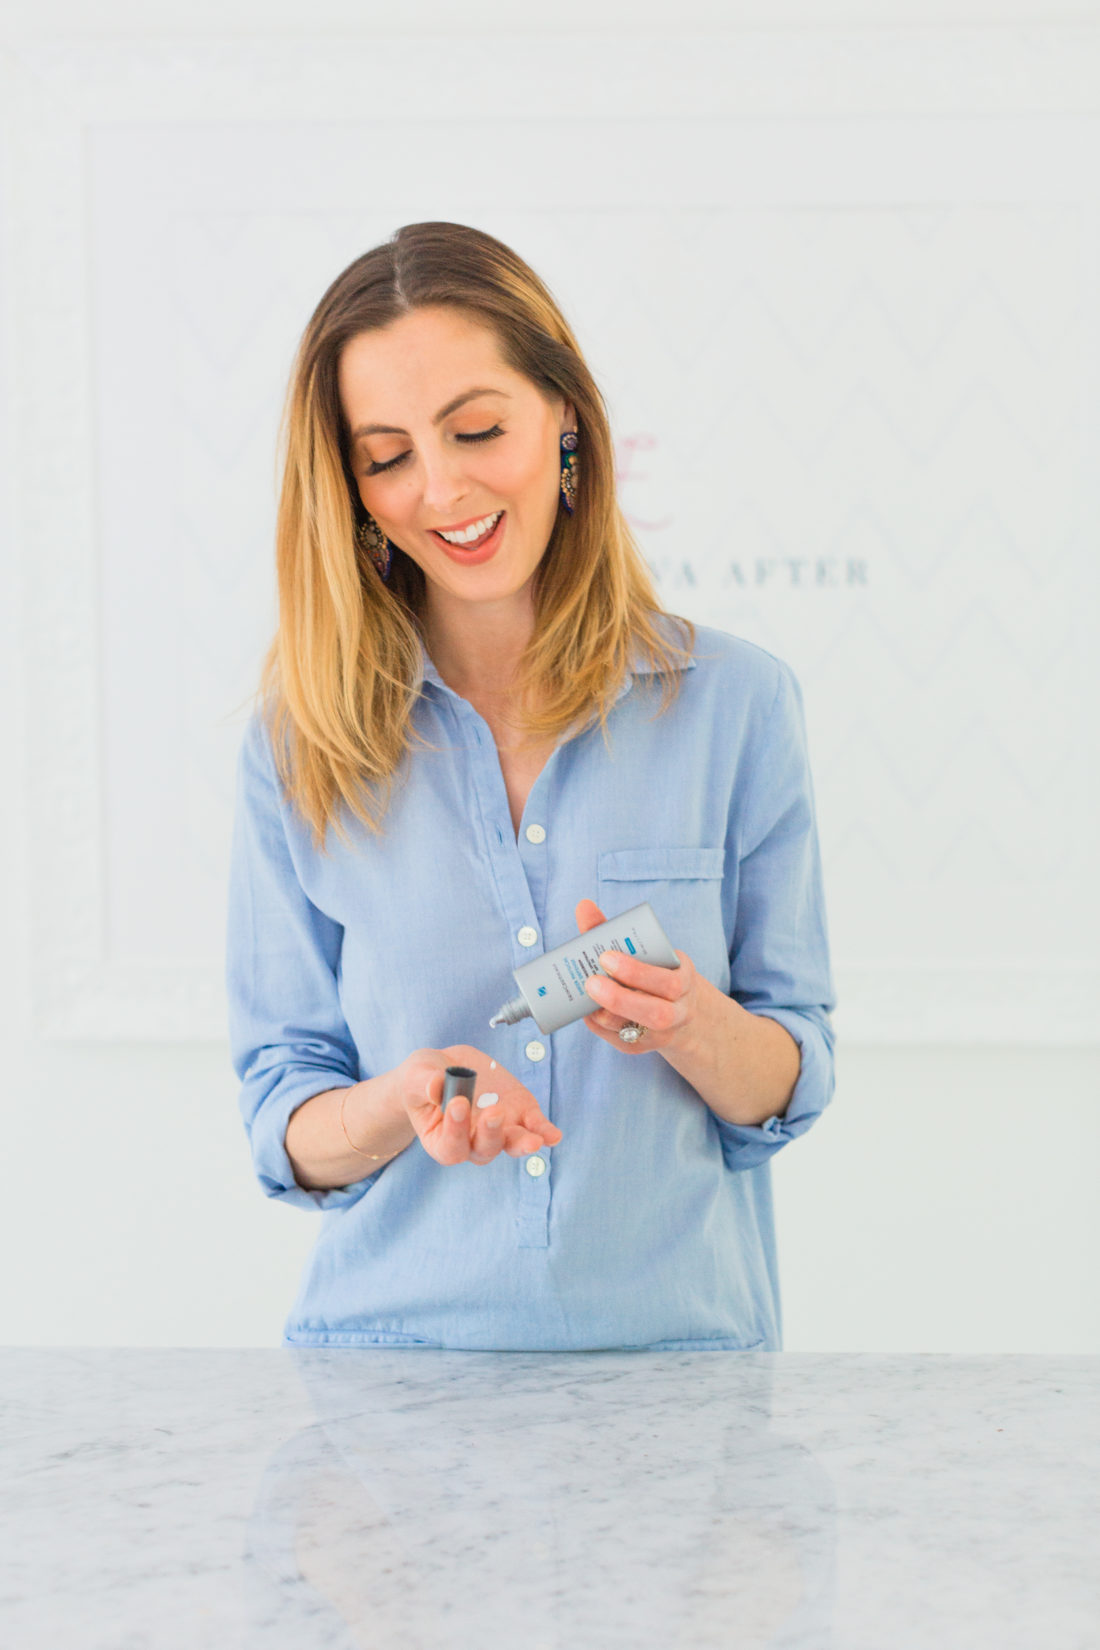 Eva Amurri Martino applies sheer sunscreen as part of her monthly obsessions roundup